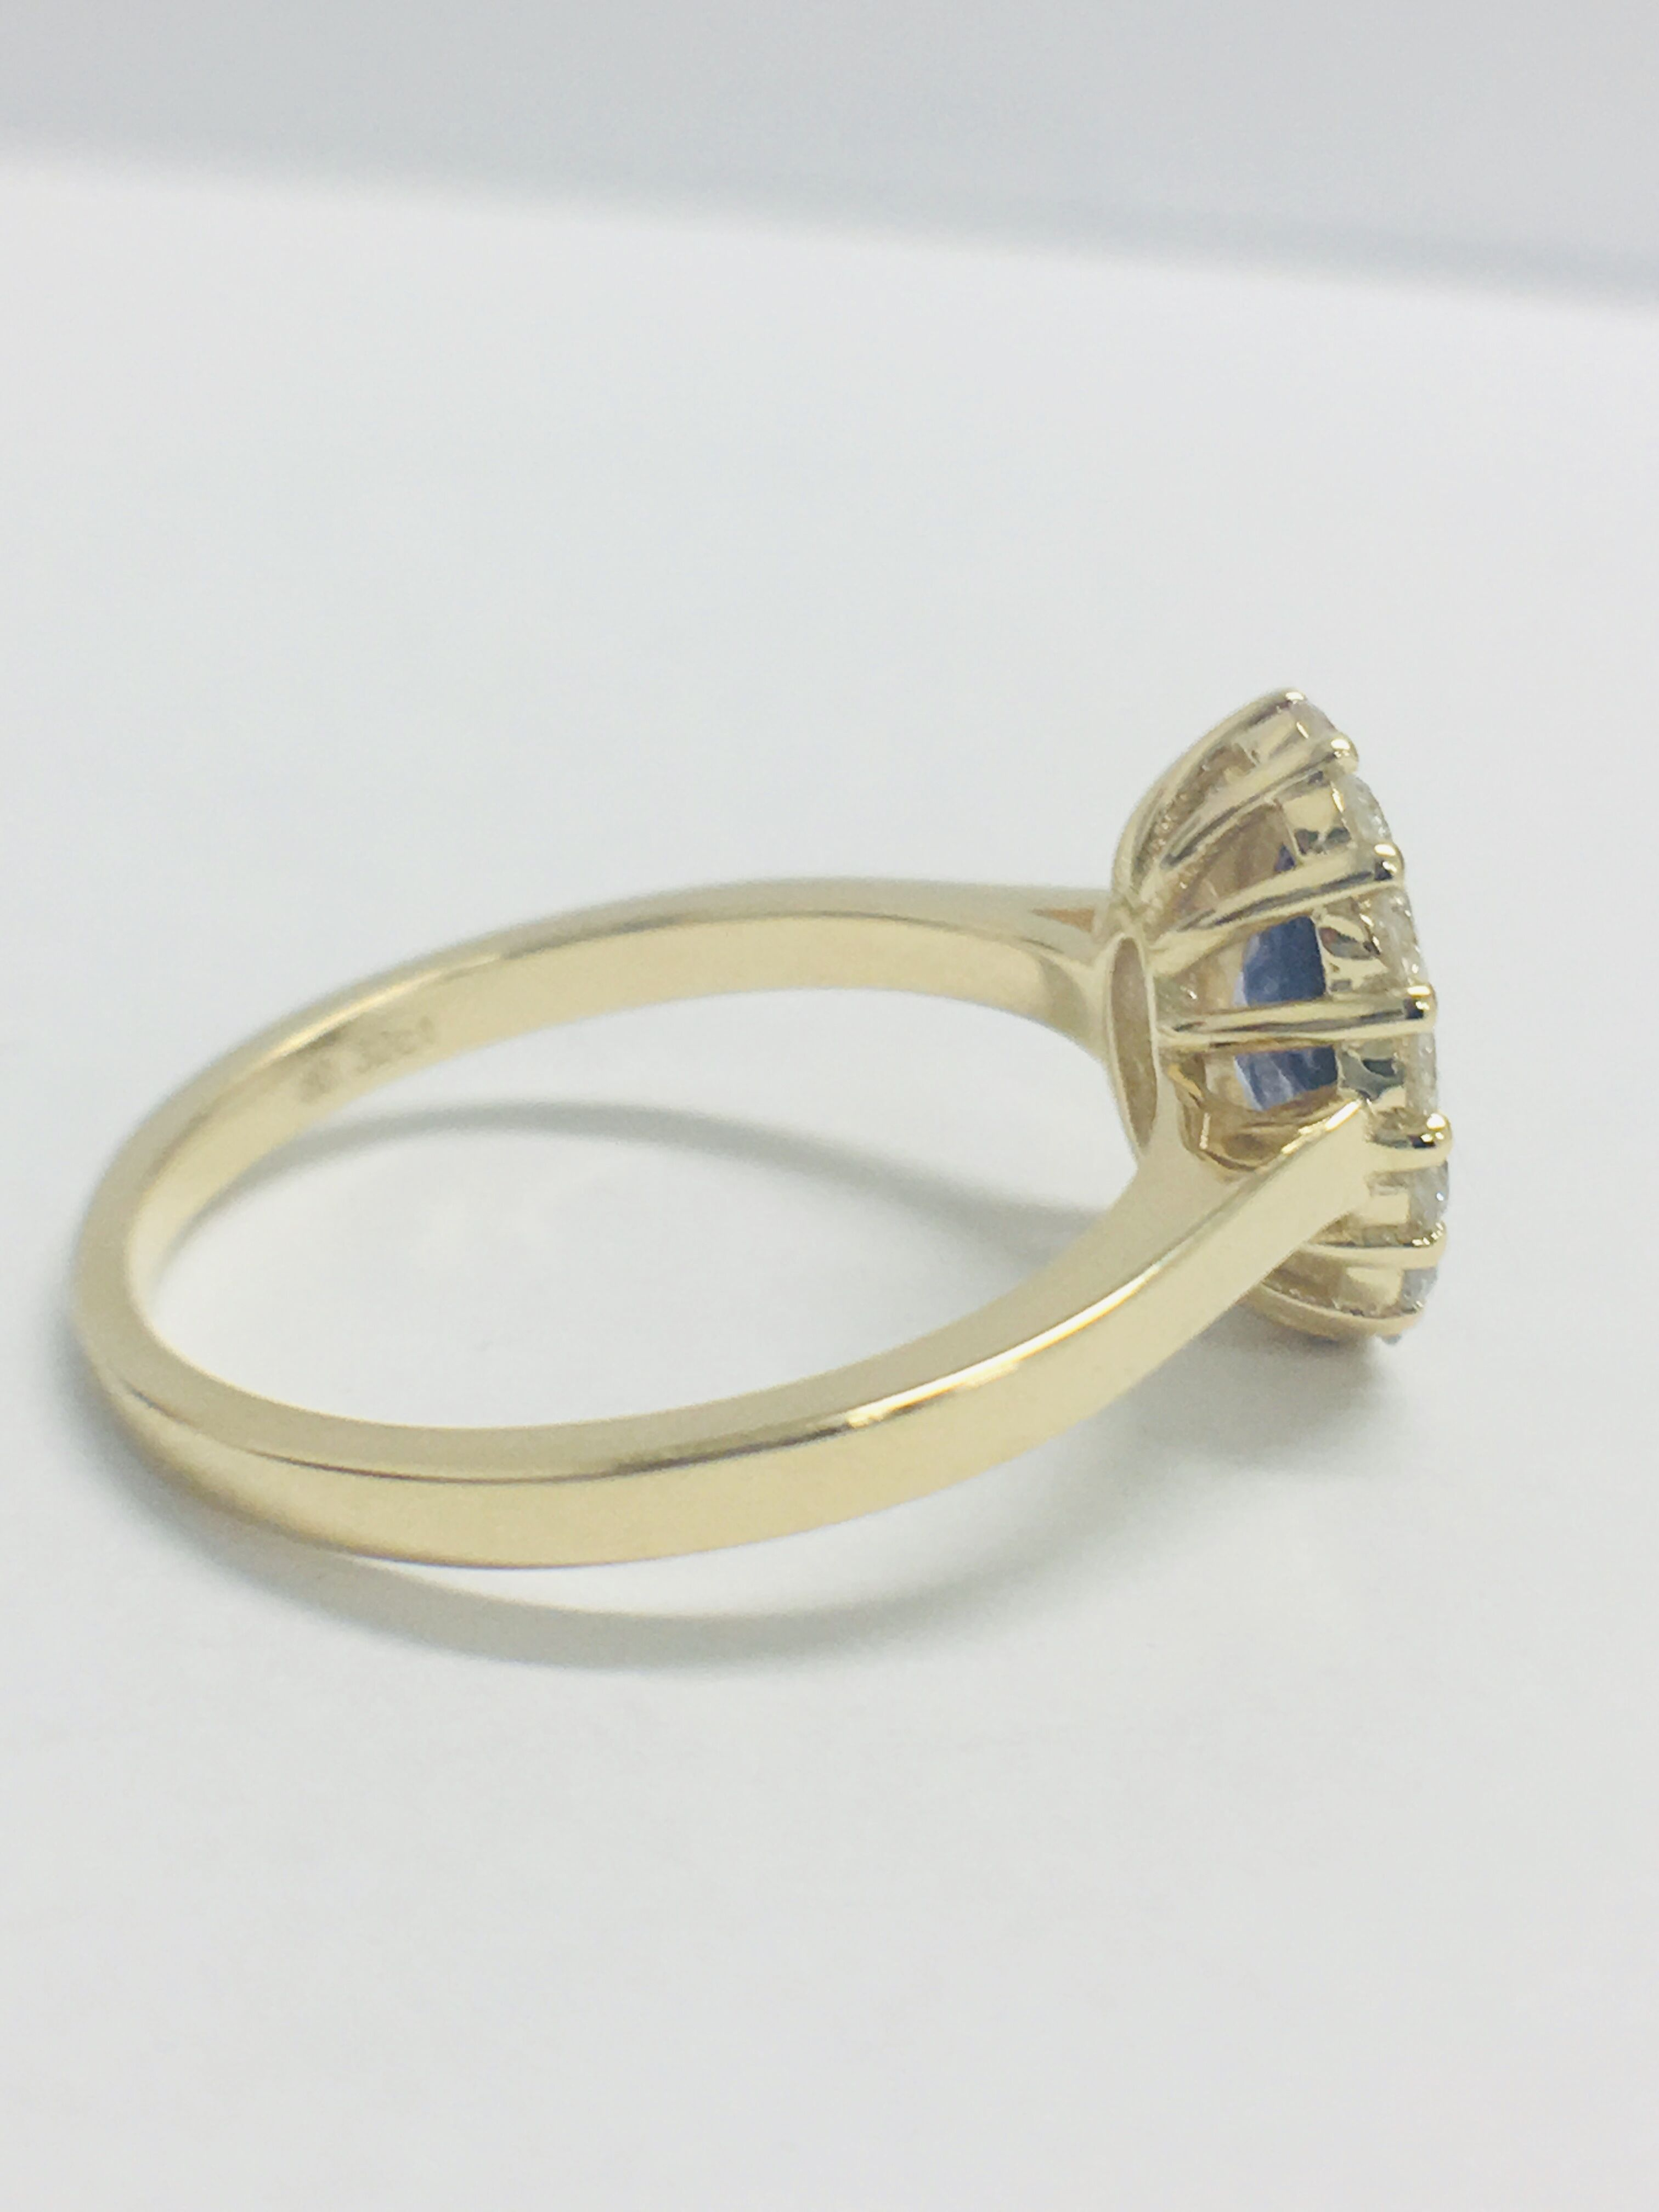 Lot 36 - 14ct Yellow Gold Sapphire and Diamond Ring